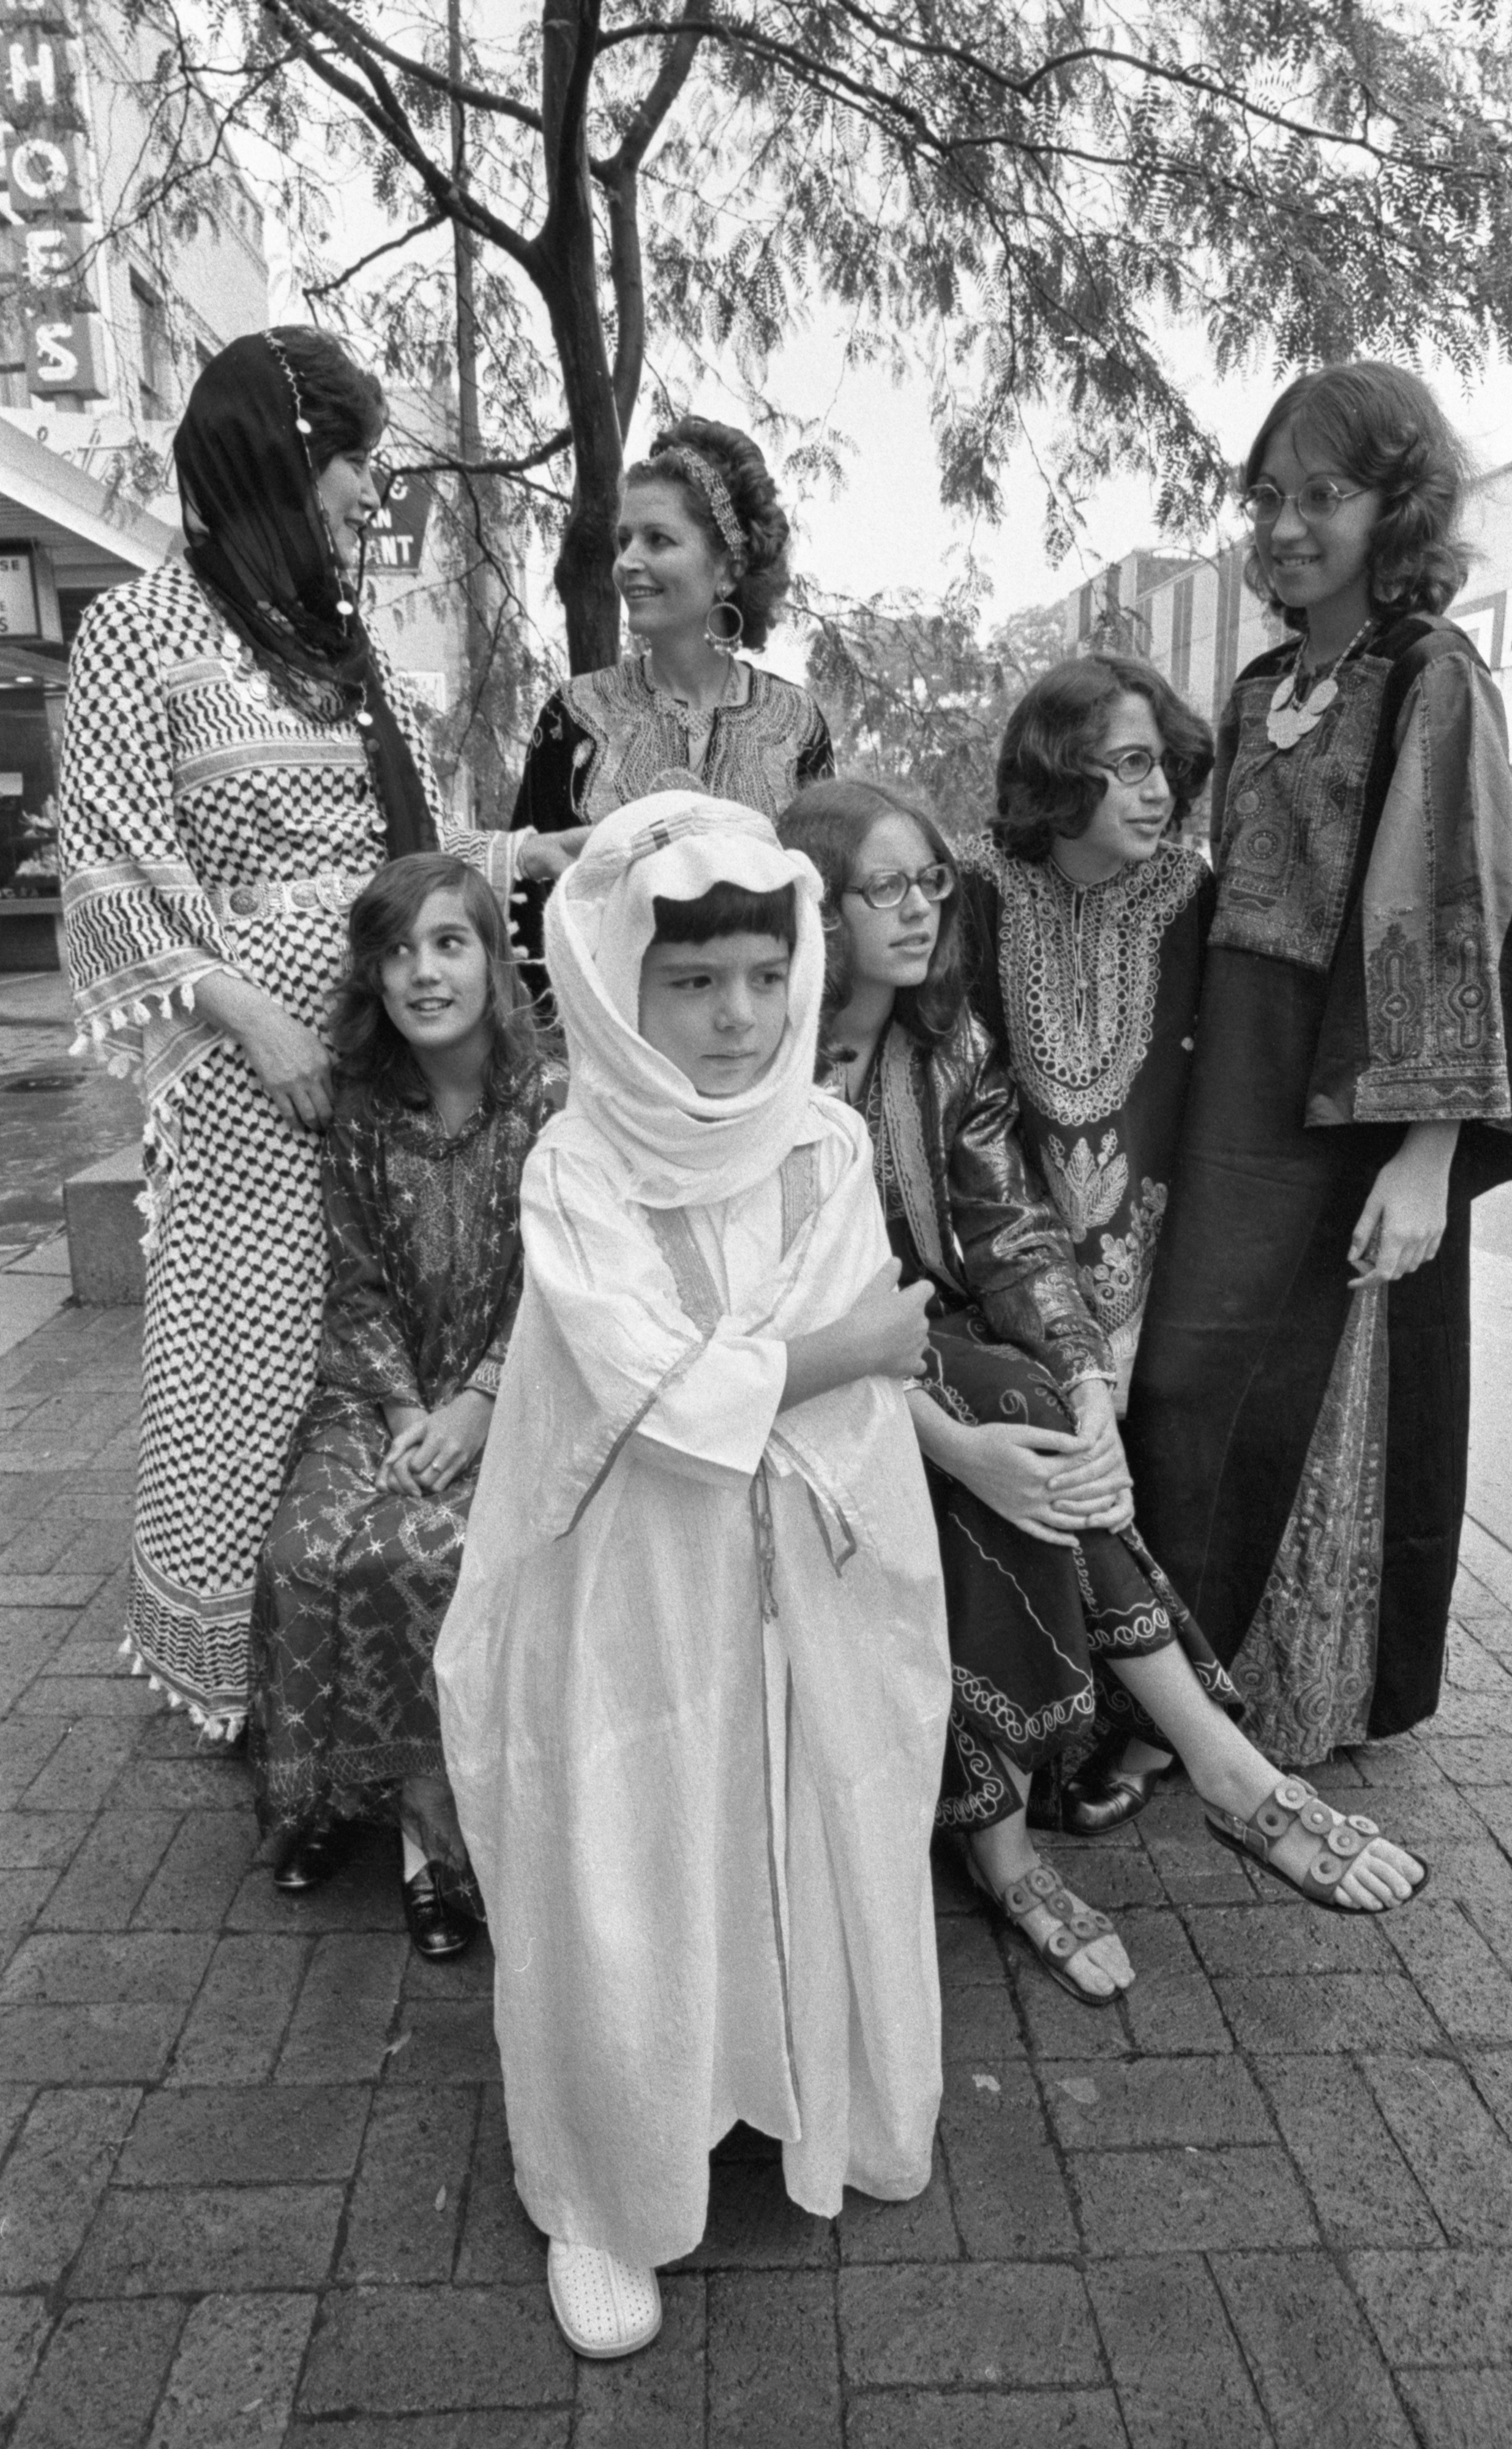 Variations Of Dress From The Arab World At The Ann Arbor Ethnic Fair, September 1975 image